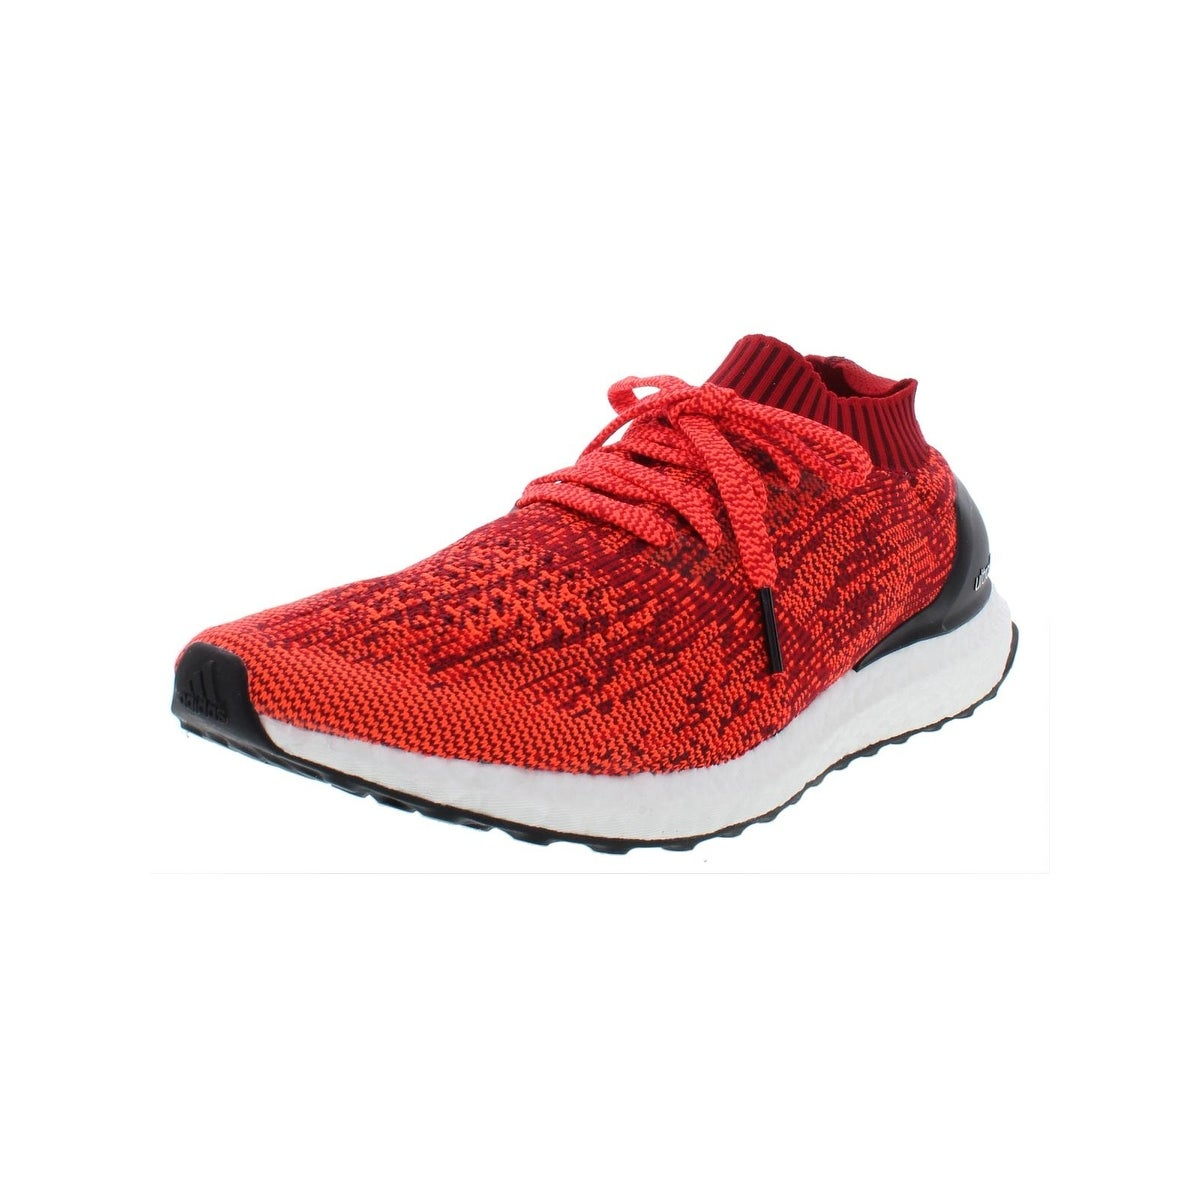 check out 64461 91c80 Adidas Mens UltraBOOST Uncaged Running Shoes Primeknit Workout